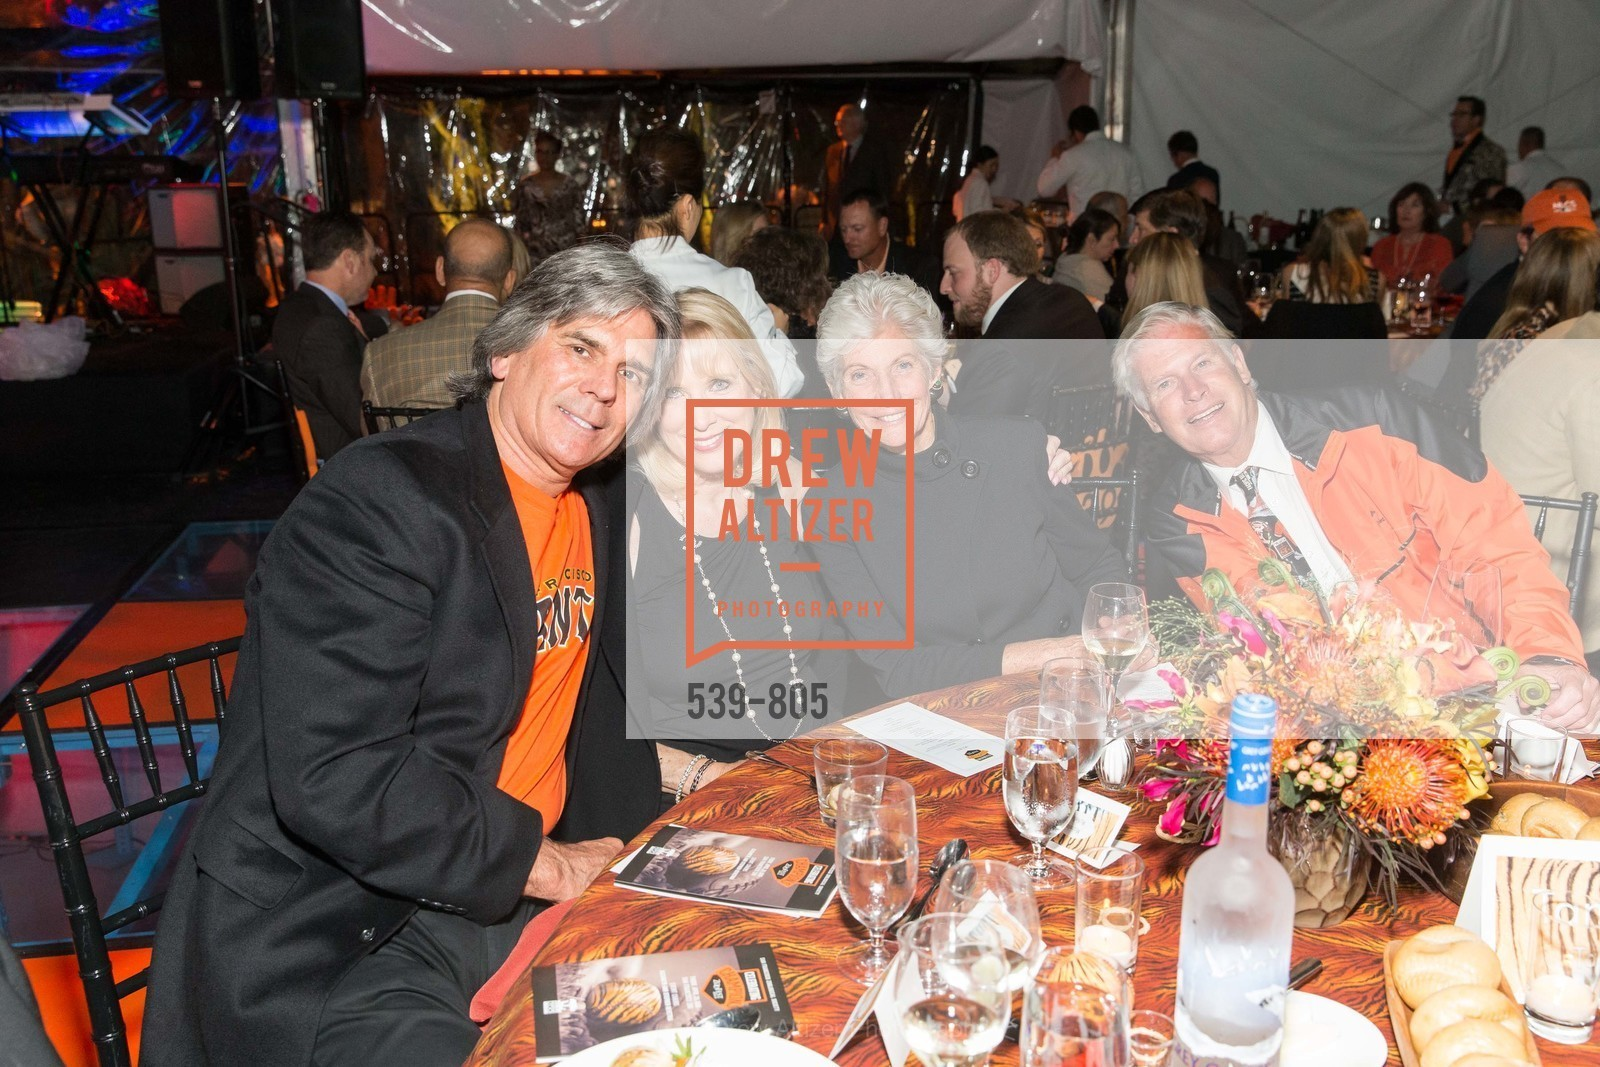 John McNellis, Cinnie Magowan, Merrill Magowan, ZOOFEST 2015, US, April 26th, 2015,Drew Altizer, Drew Altizer Photography, full-service event agency, private events, San Francisco photographer, photographer California